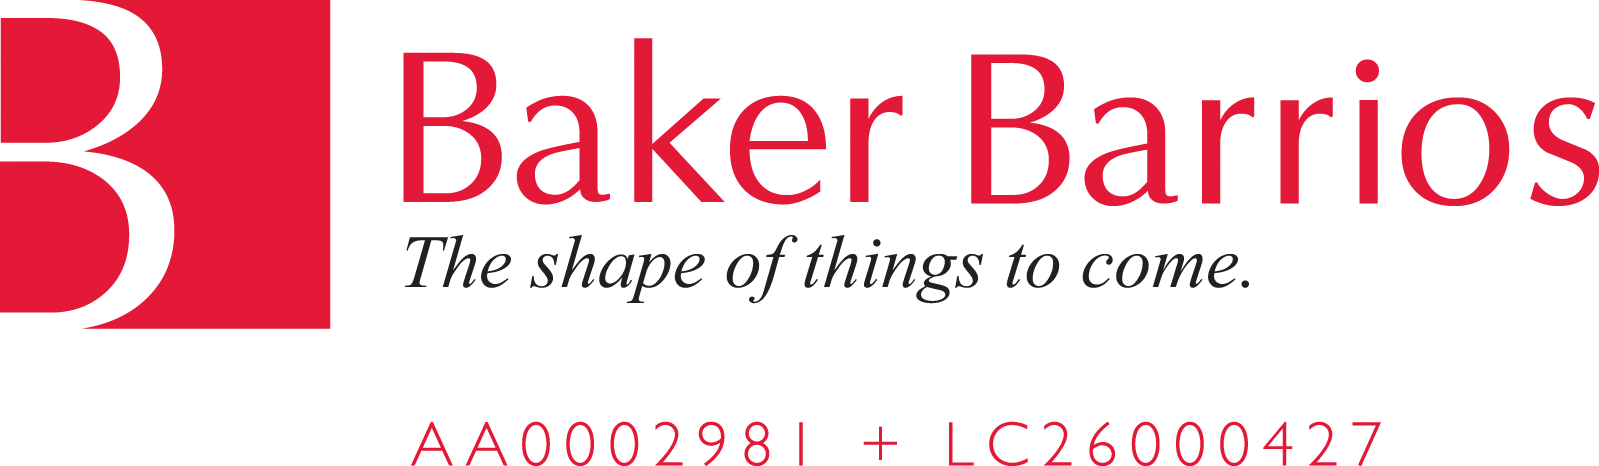 Baker Barrios Architects logo